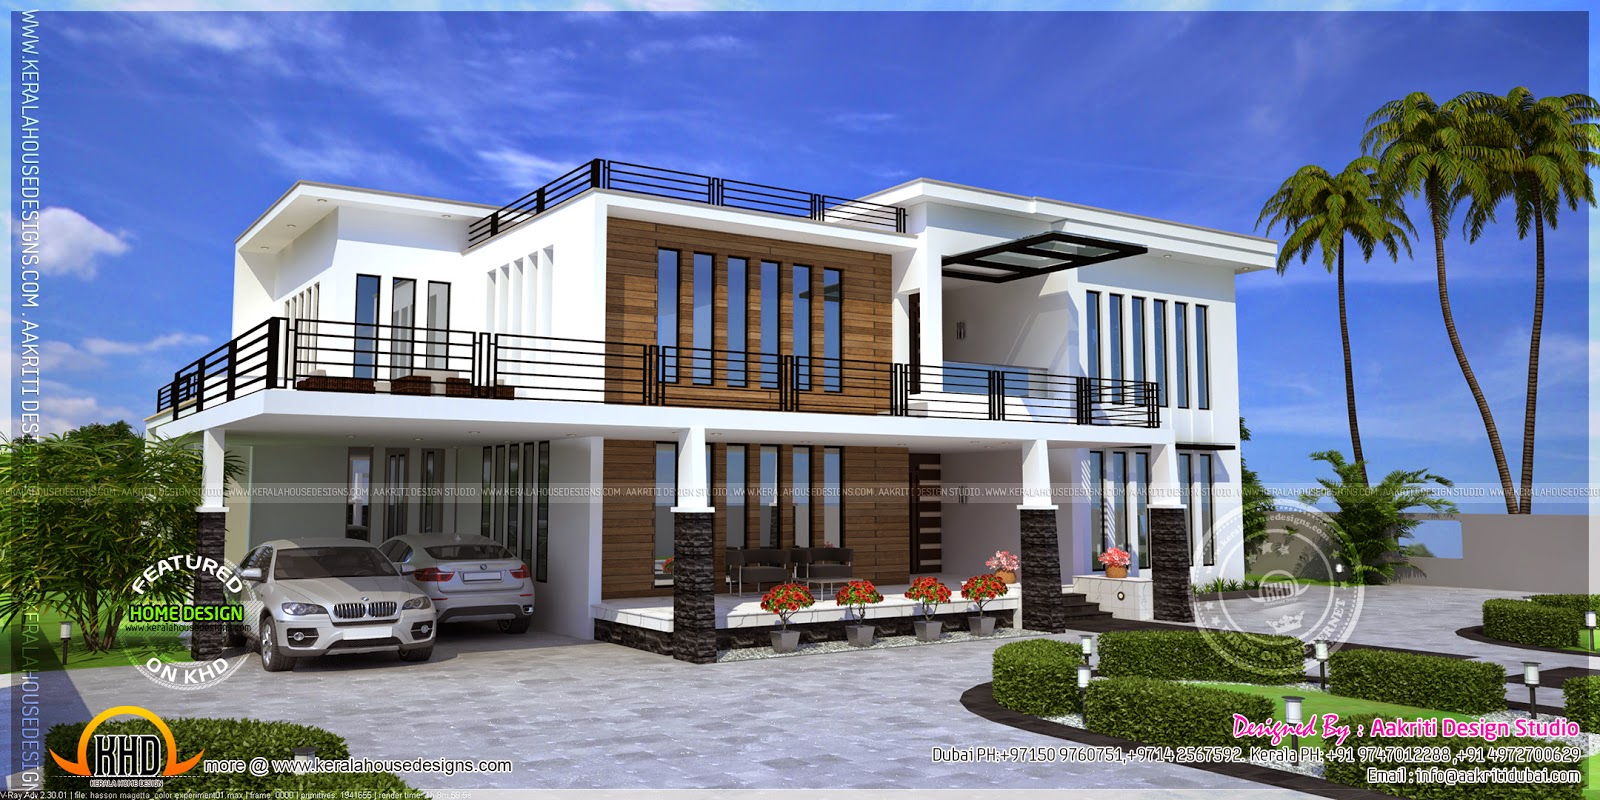 Contemporary house view kerala home design and floor plans for View house plans online